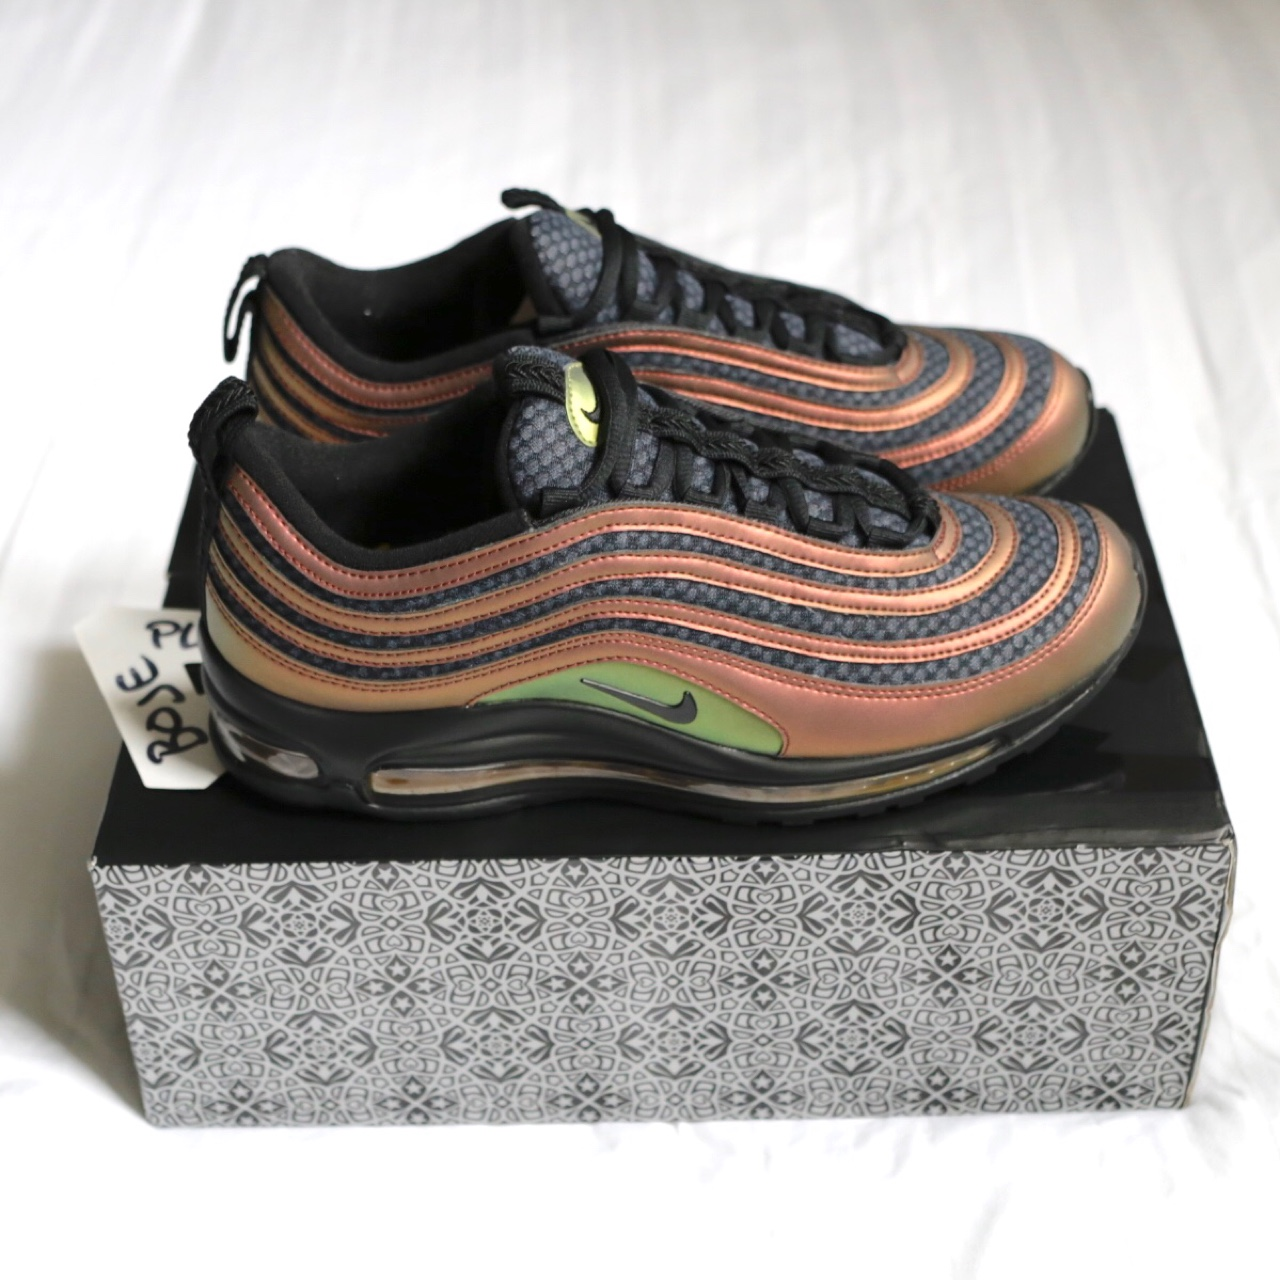 Nike Air Max 97 Skepta. London x Marrakesh. Size EU